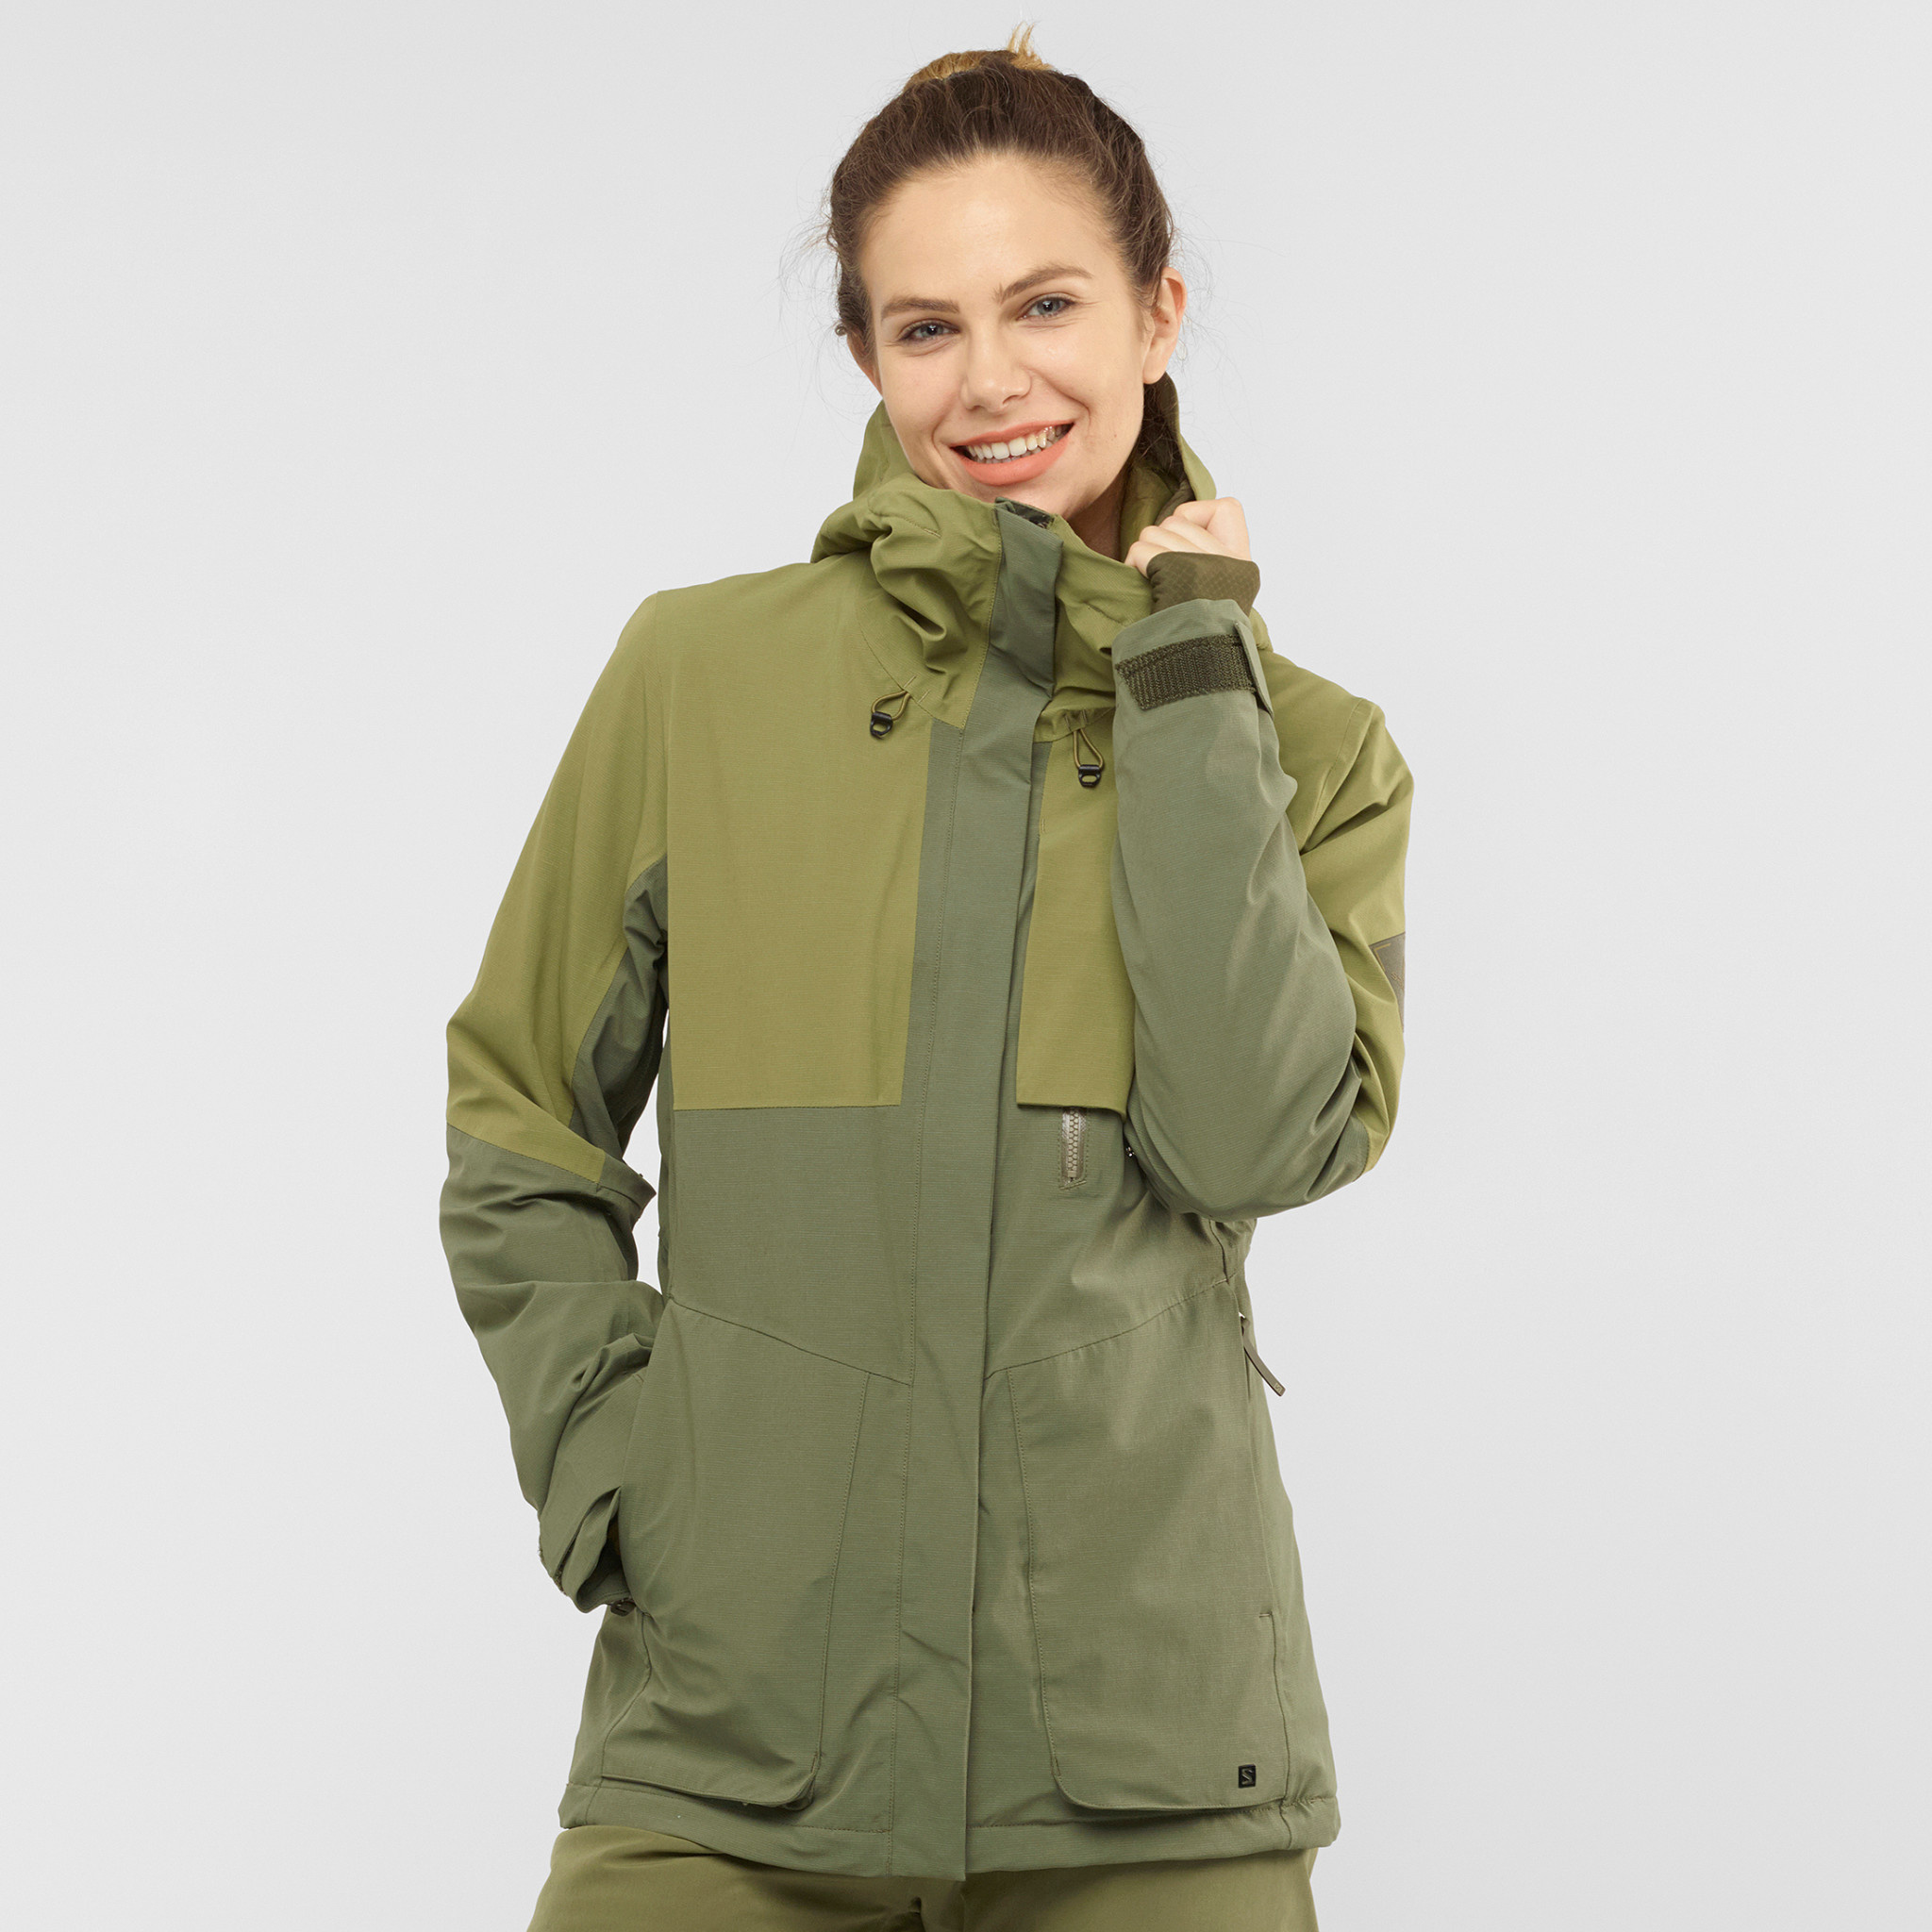 PROOF LT INSULATED JACKET W-1